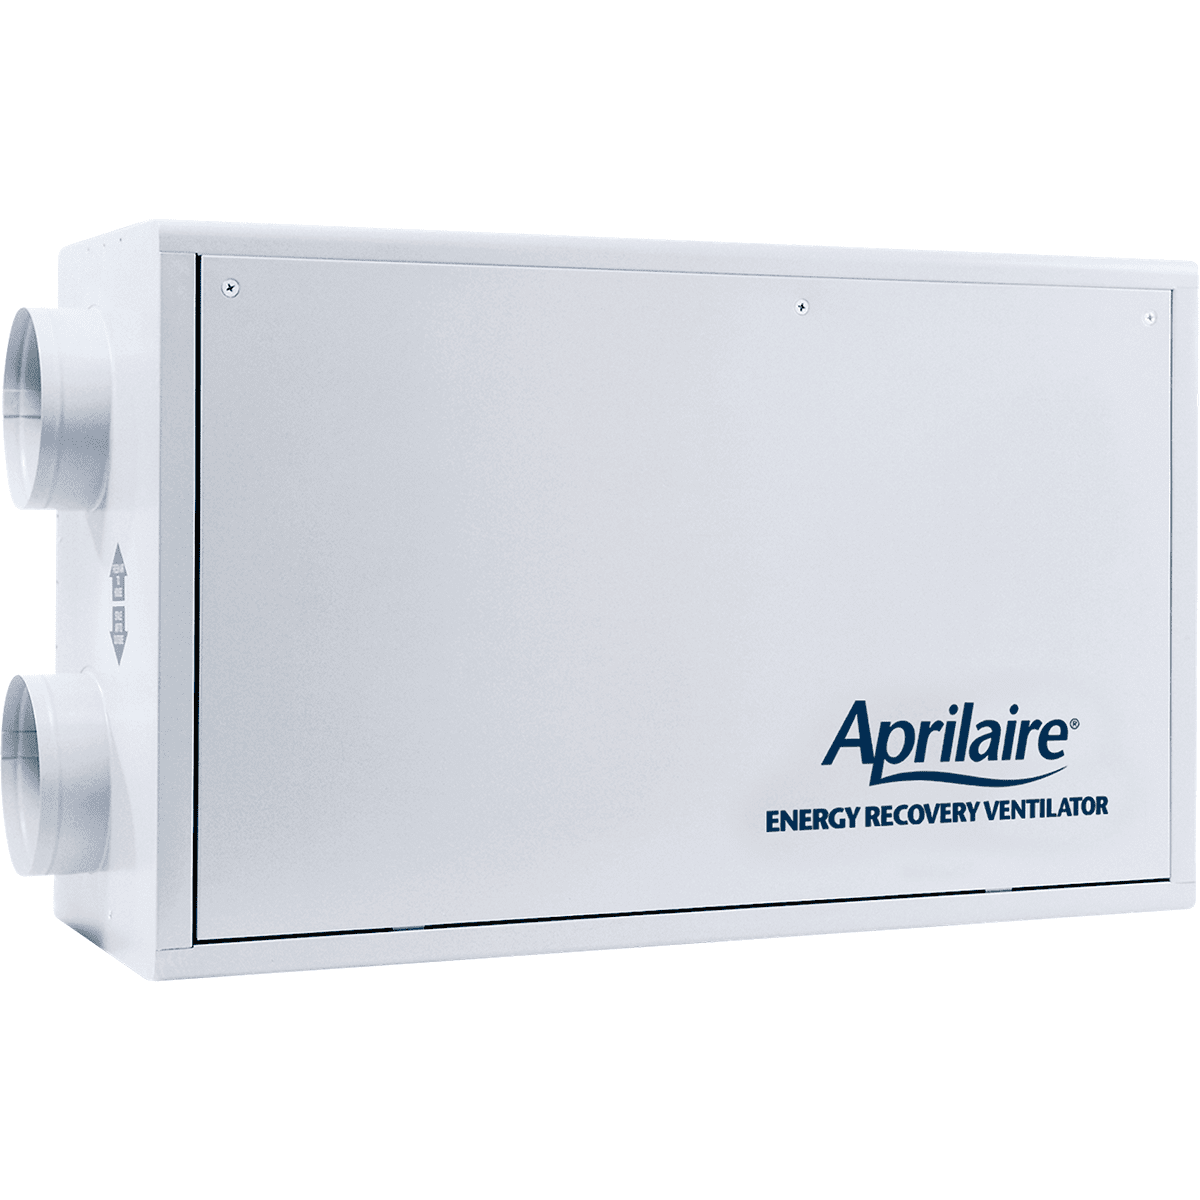 Image of Aprilaire Energy Recovery Ventilator